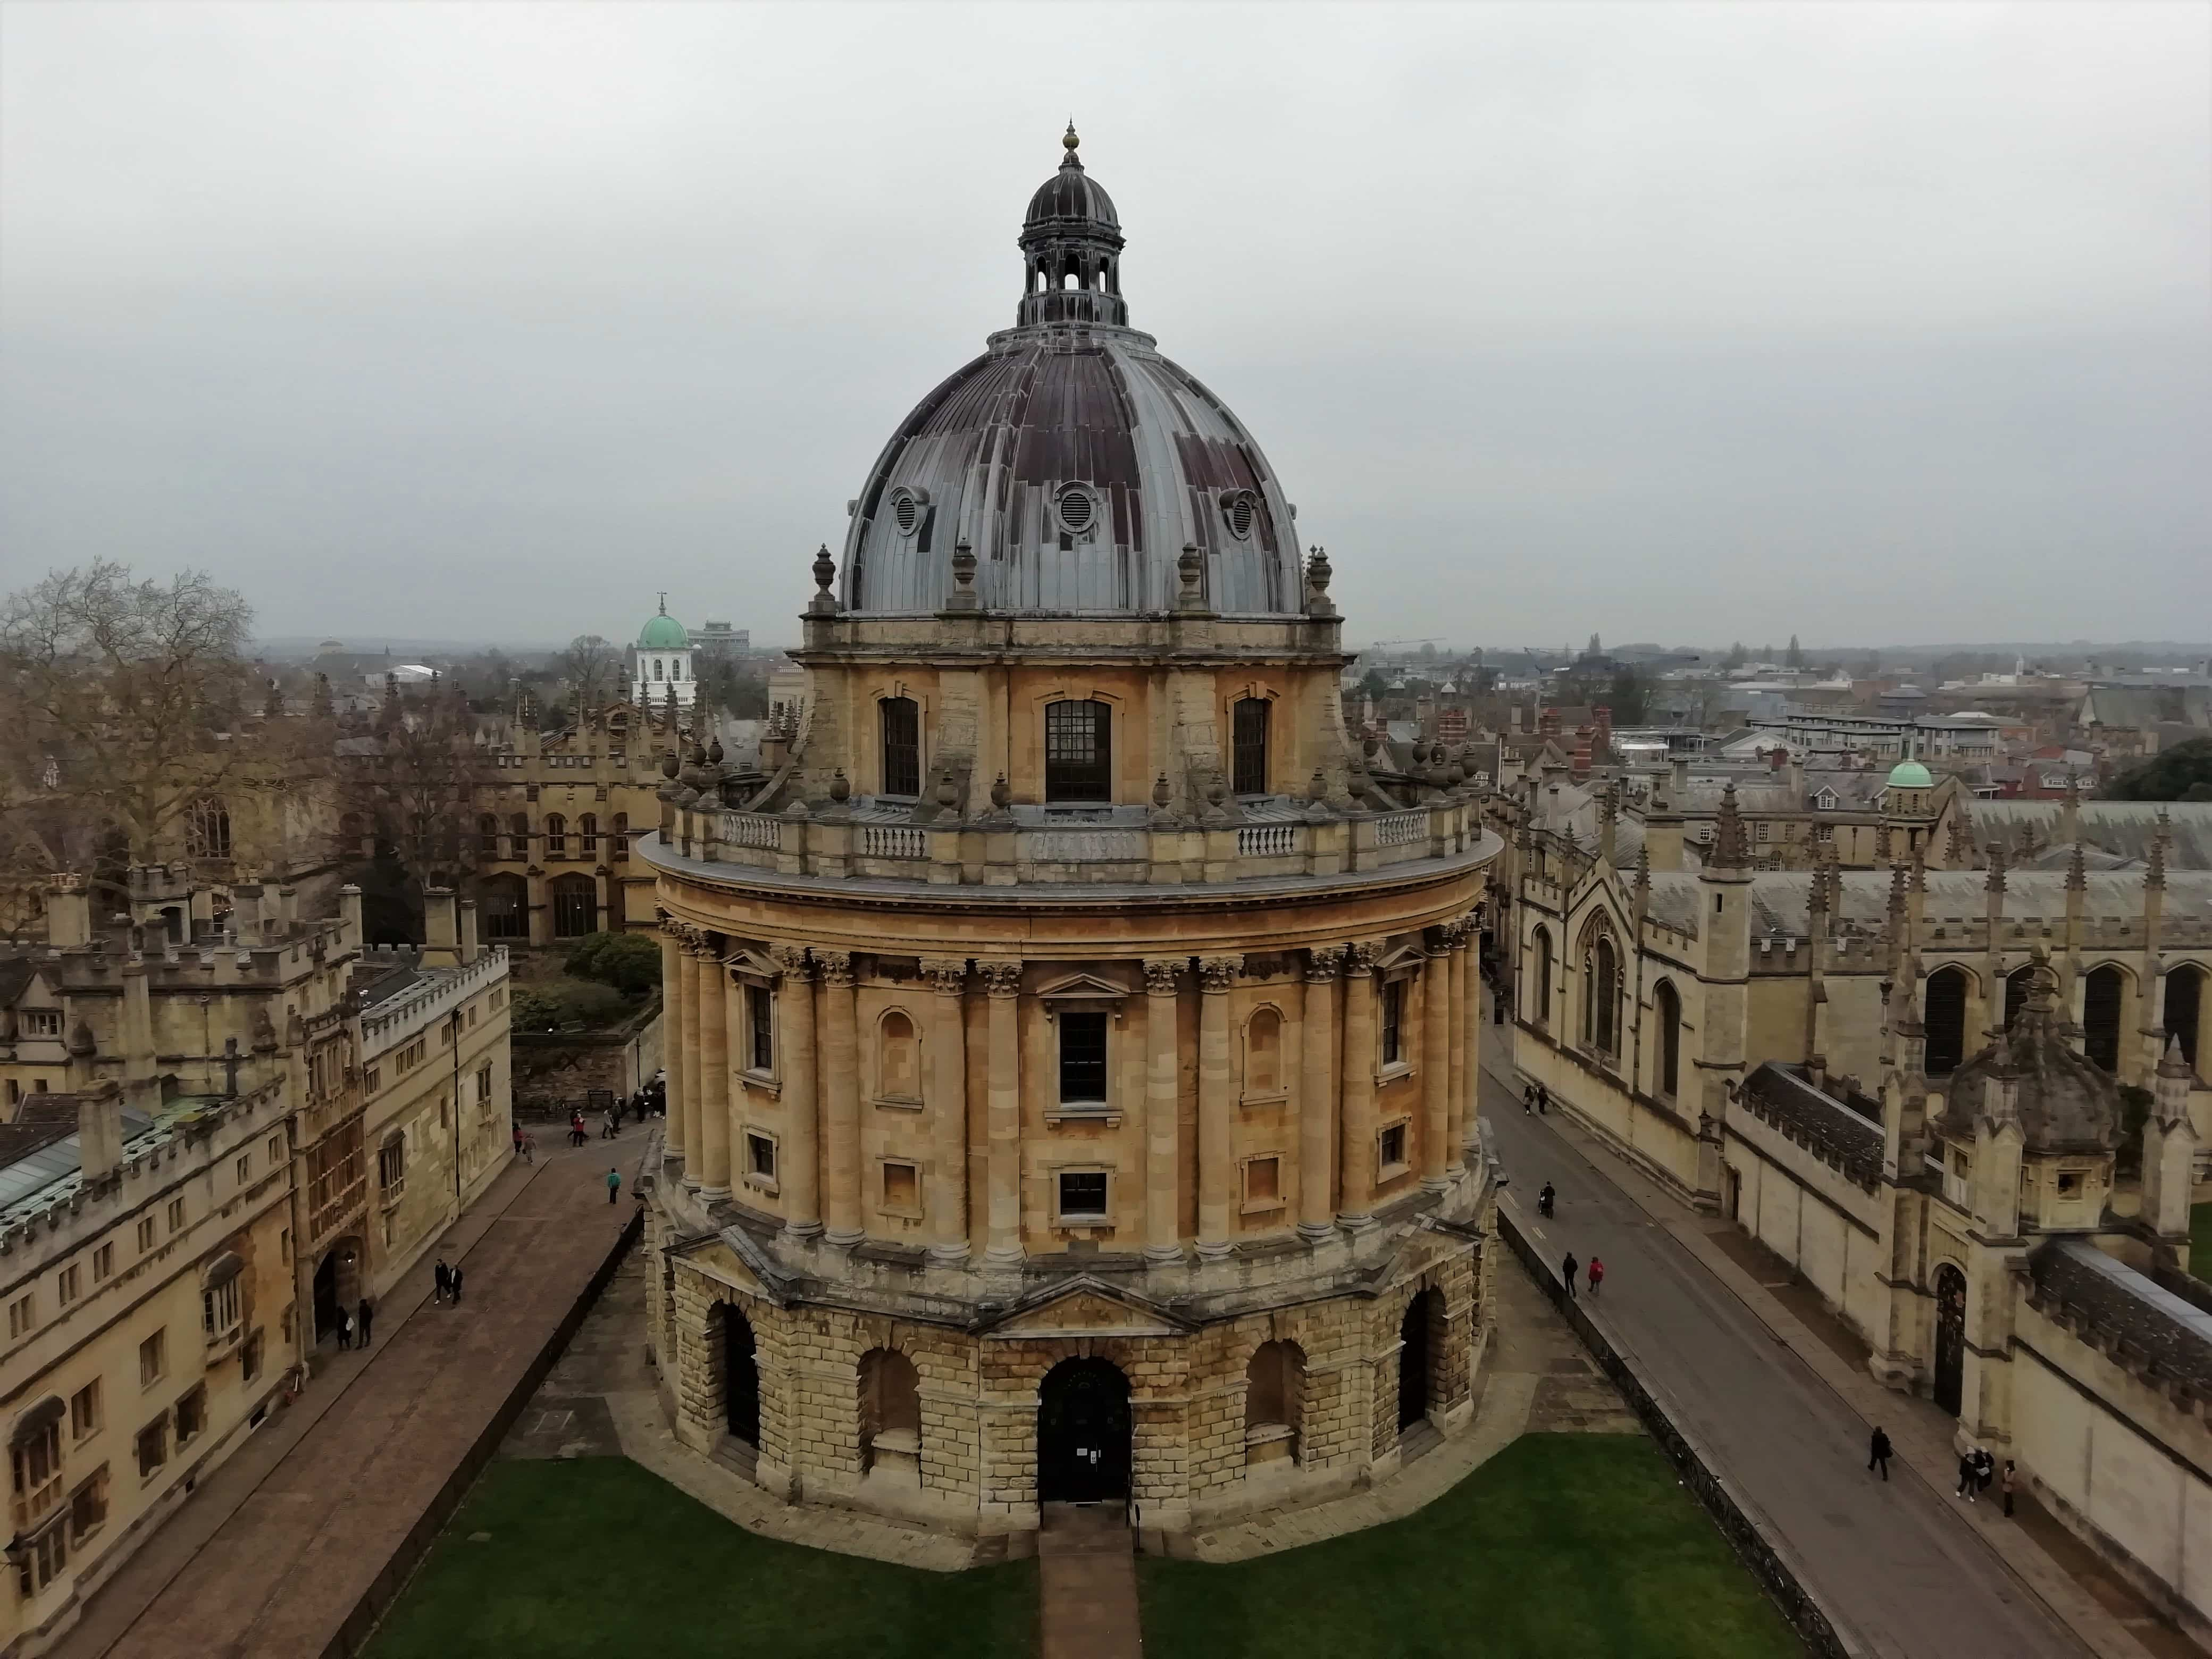 View of Radcliffe Camera from the University Church of St Mary the Virgin in Oxford